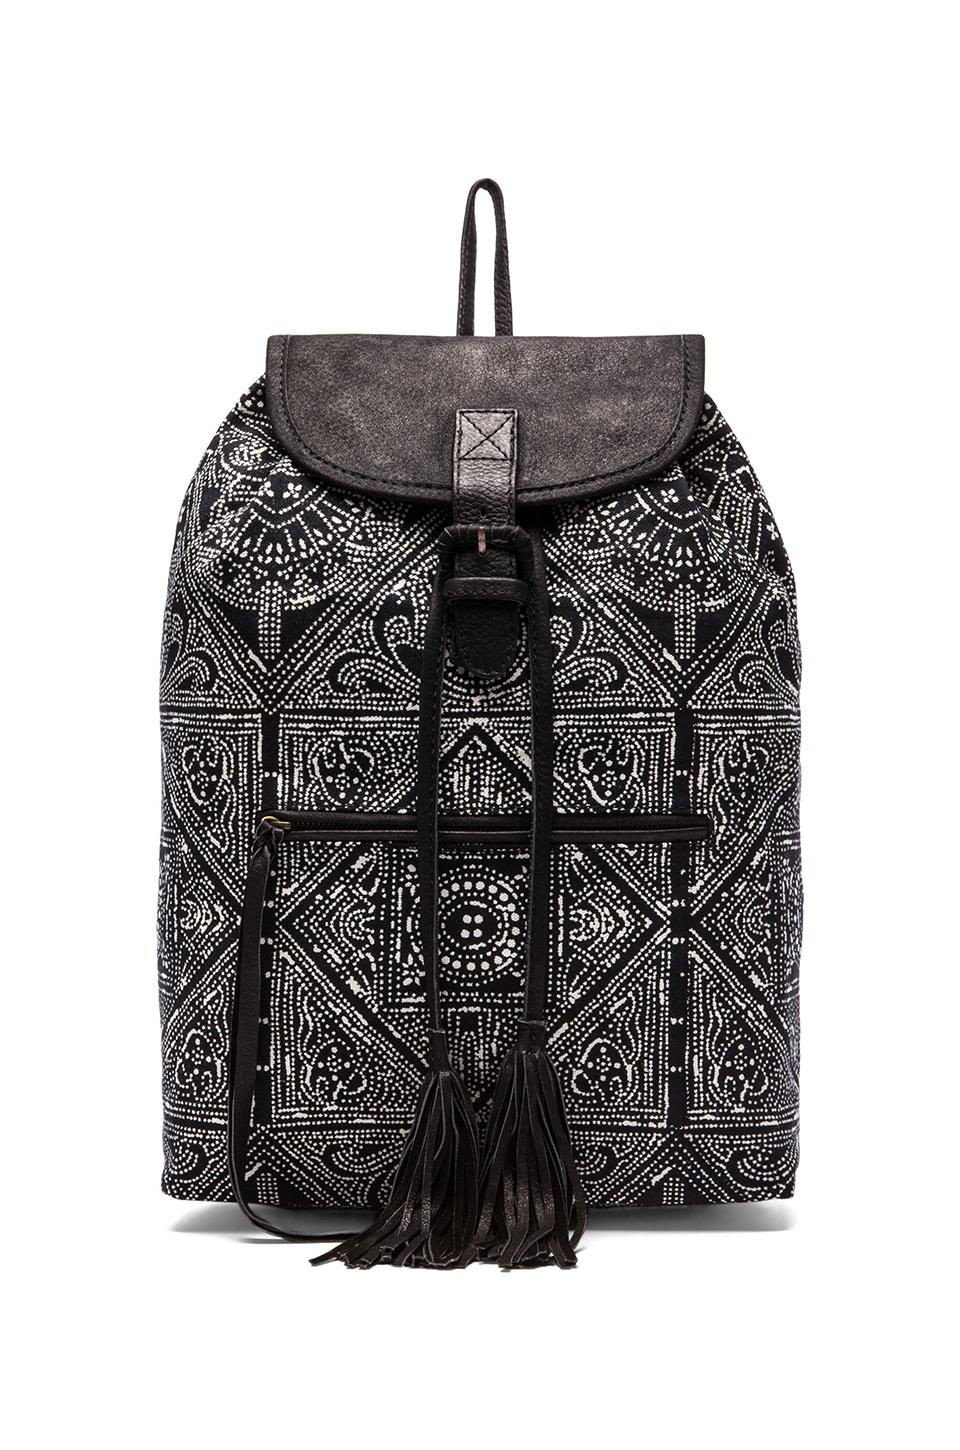 Cleobella Trey Backpack in Black